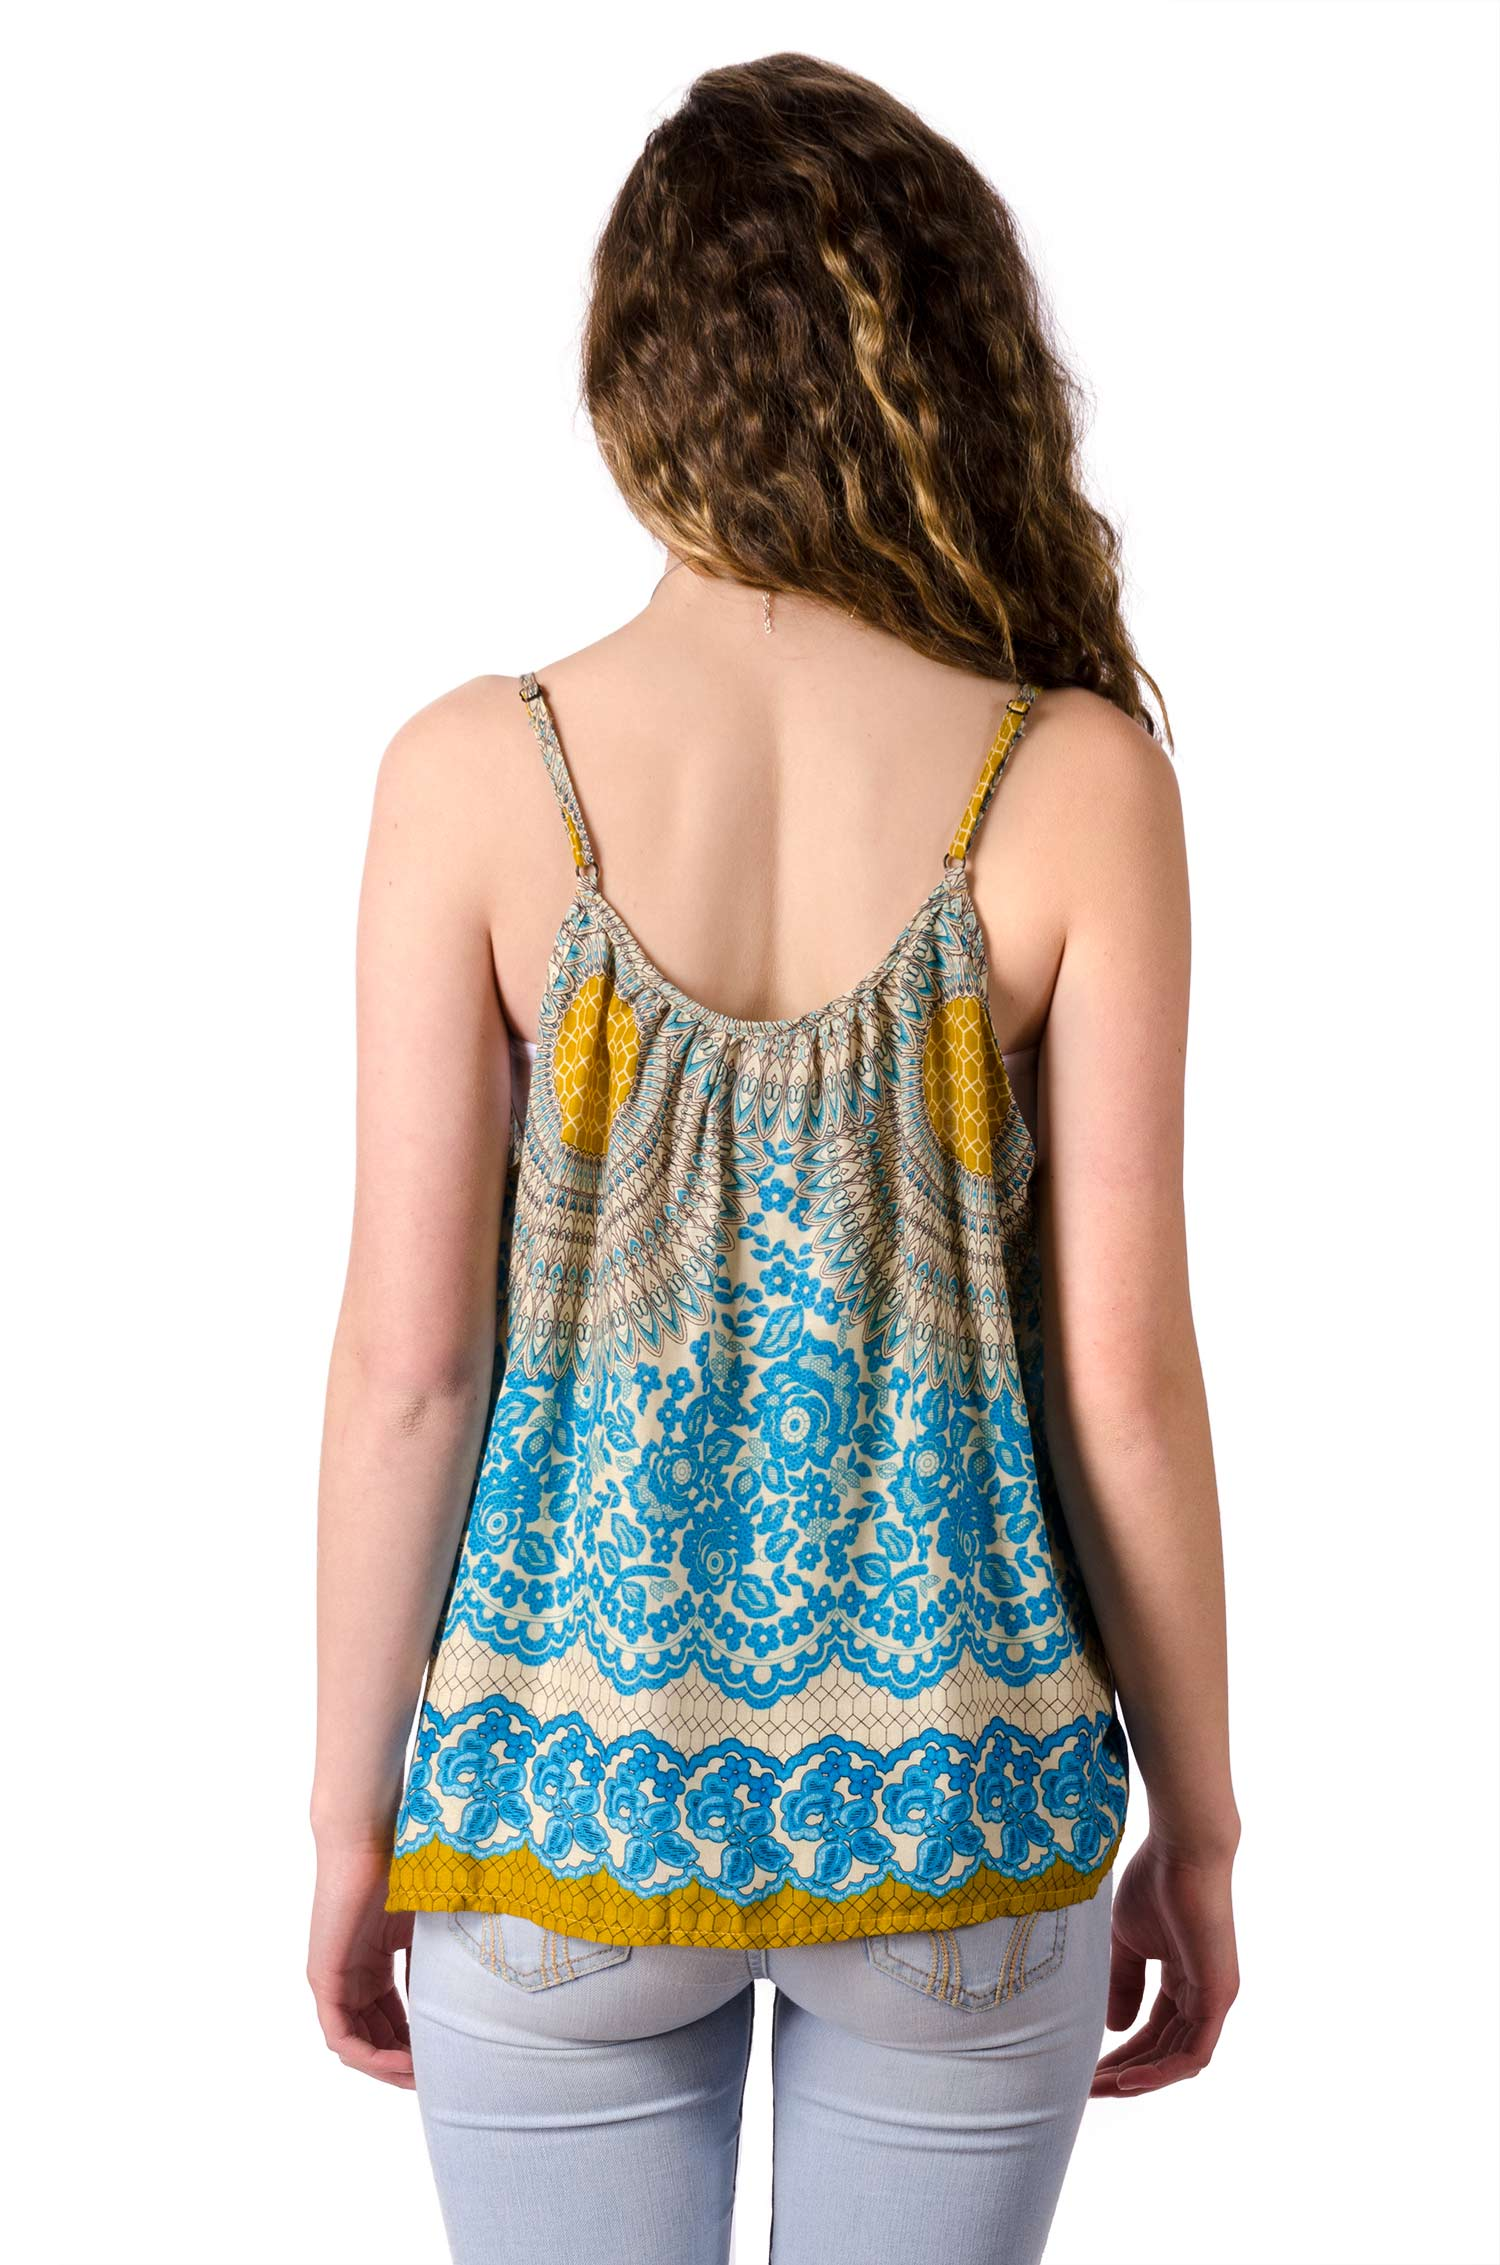 Print Cami Top - Teal Multi - 4483T